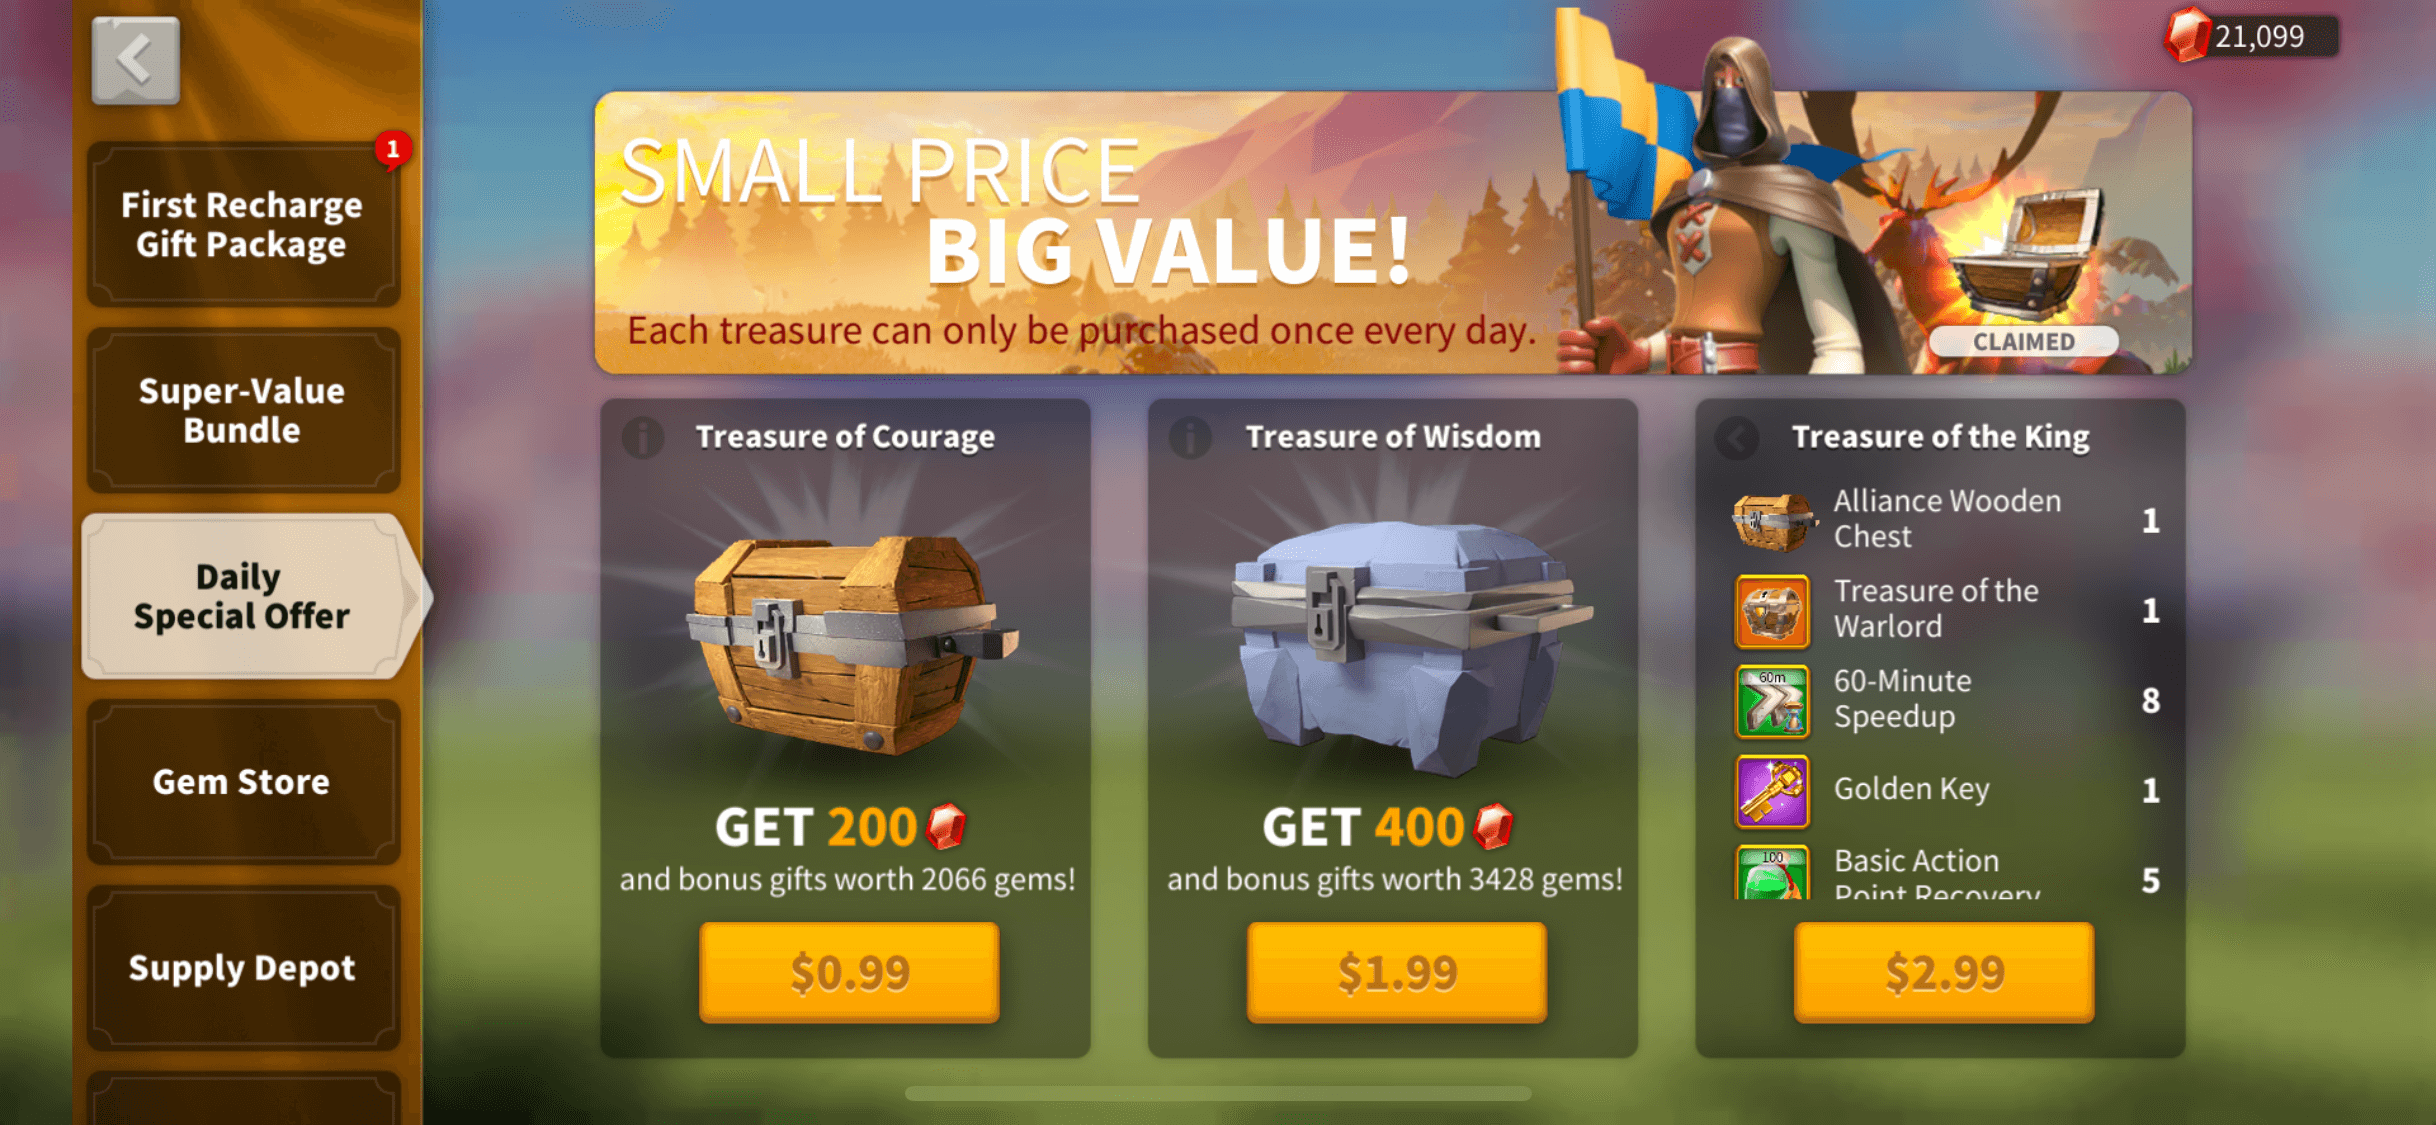 daily special offers